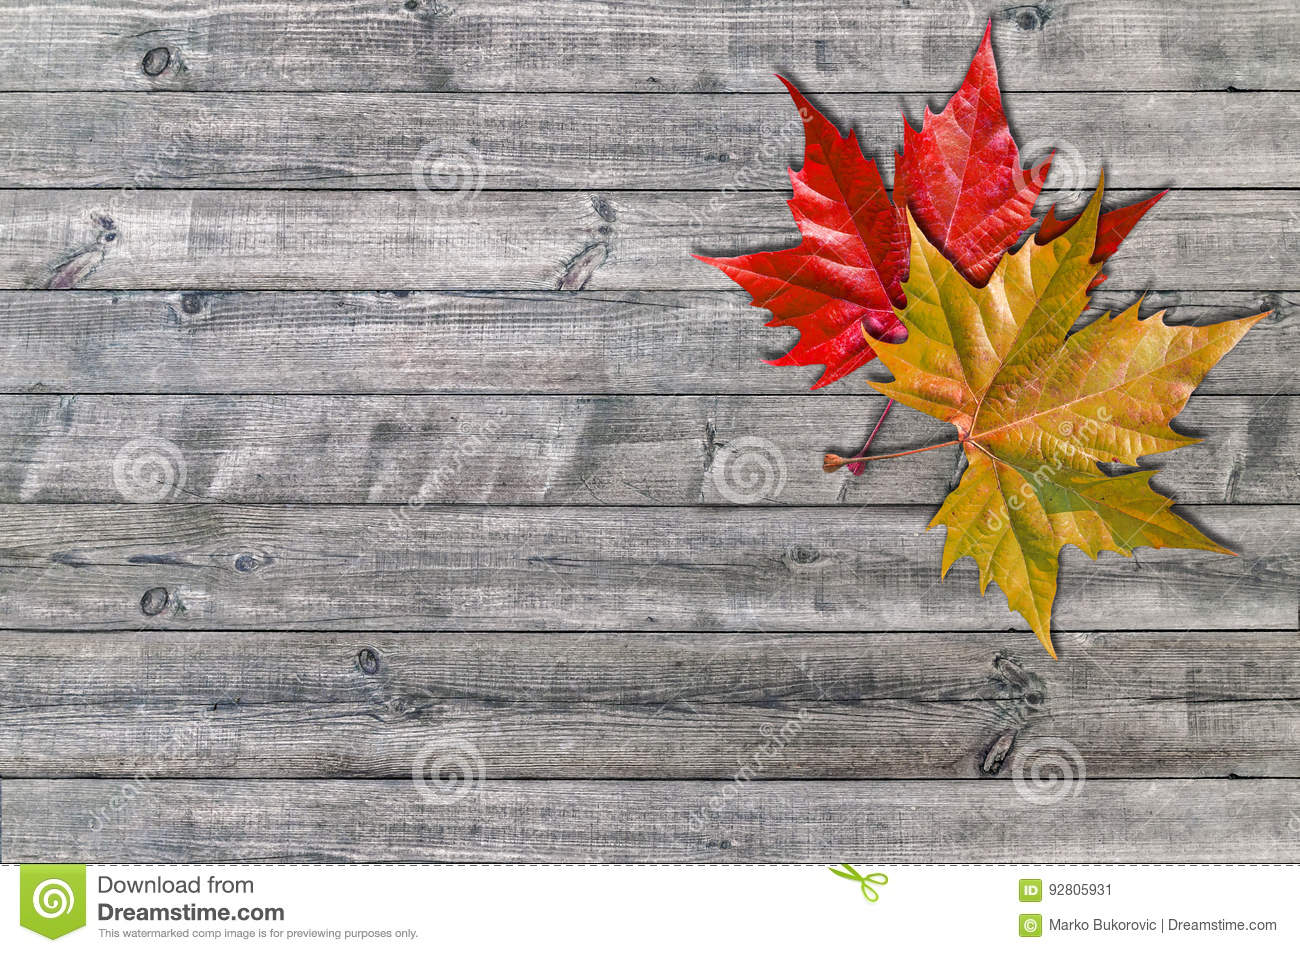 Red And Yellow Leaf On Wooden Board Background Stock Image